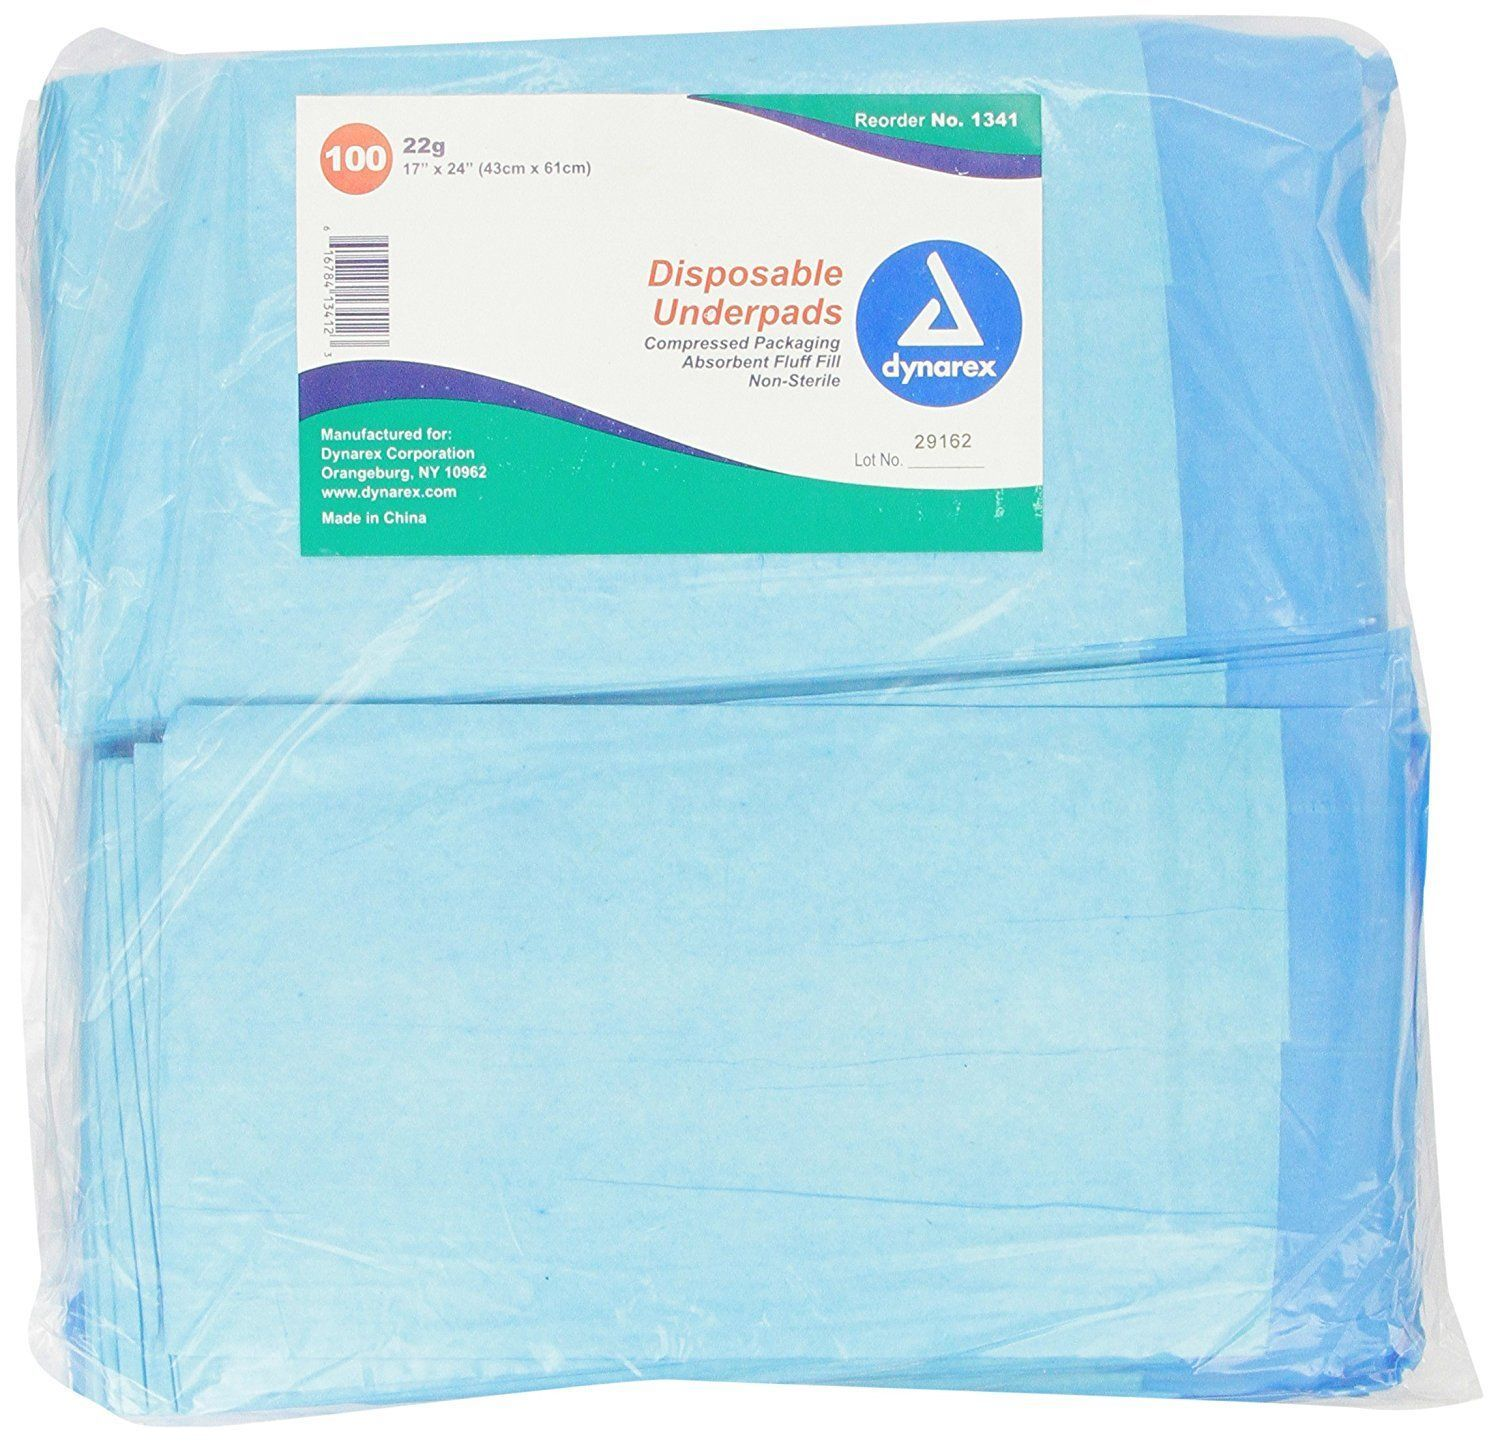 Disposable Underpad 100pcs Waterproof Urinary Incontinence Bed